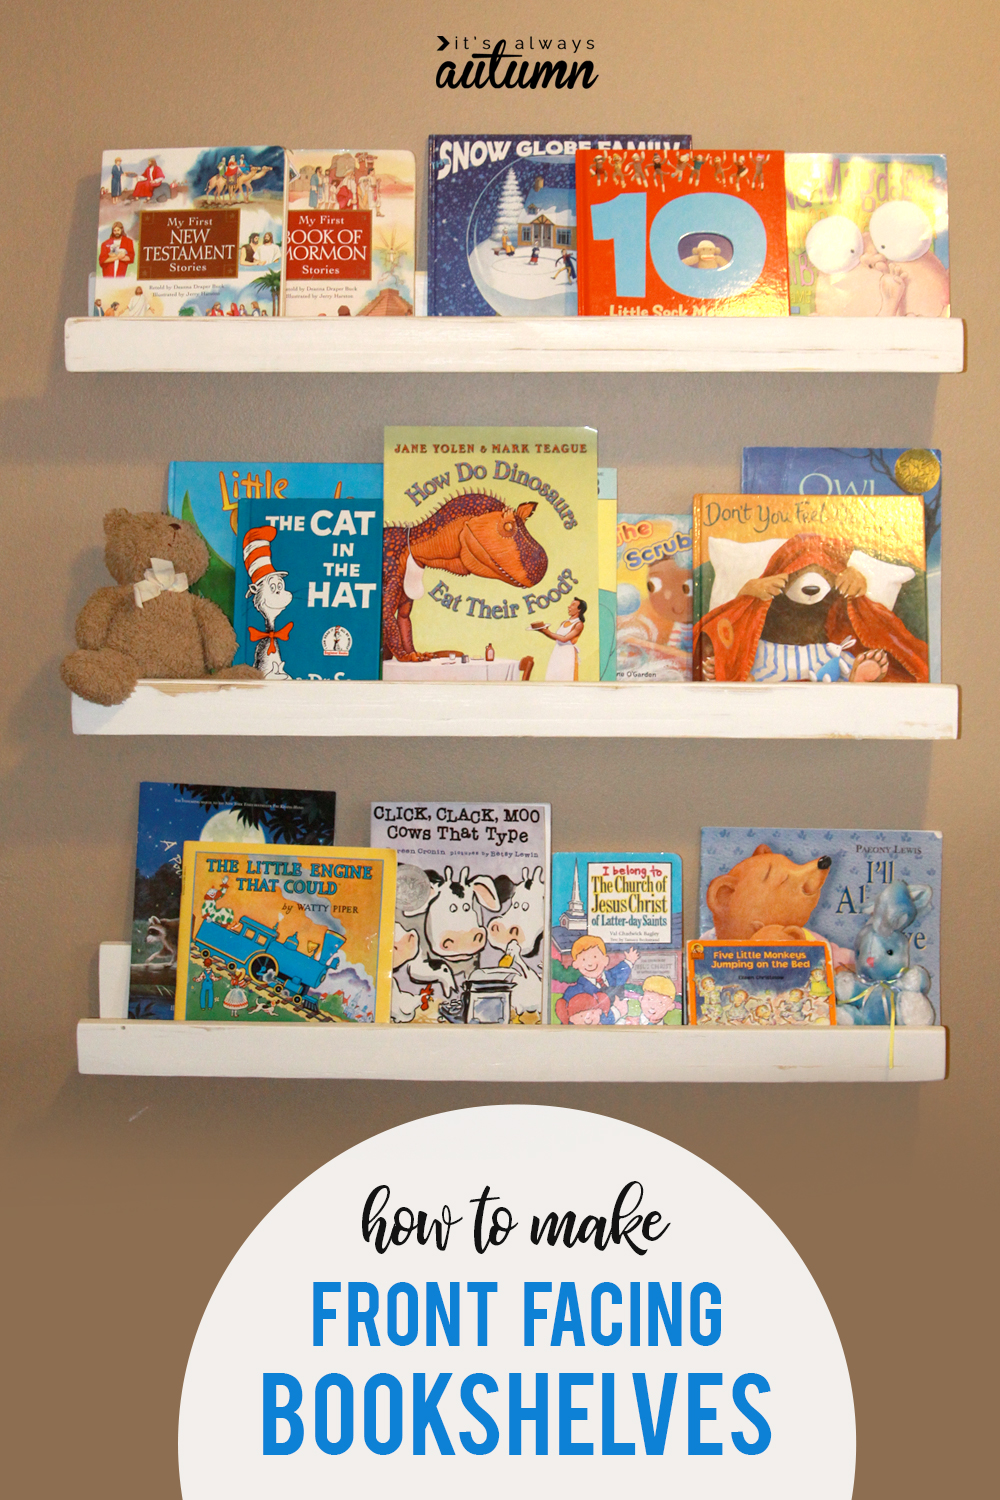 How To Make Front Facing Bookshelves Store And Display Books In A Kids Room